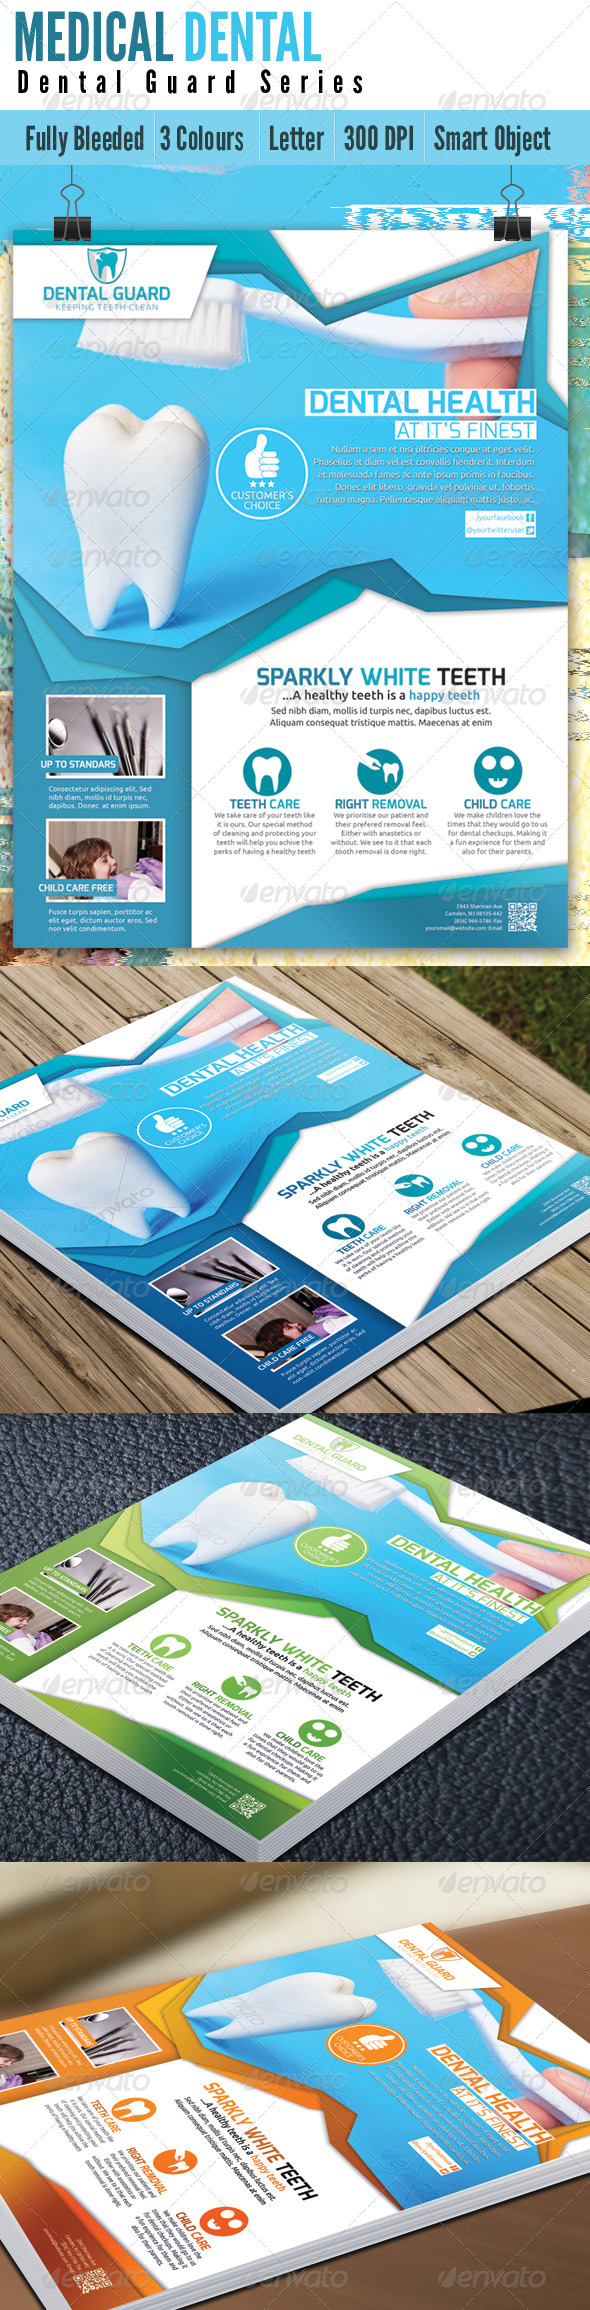 Medical Dental Flyer V2